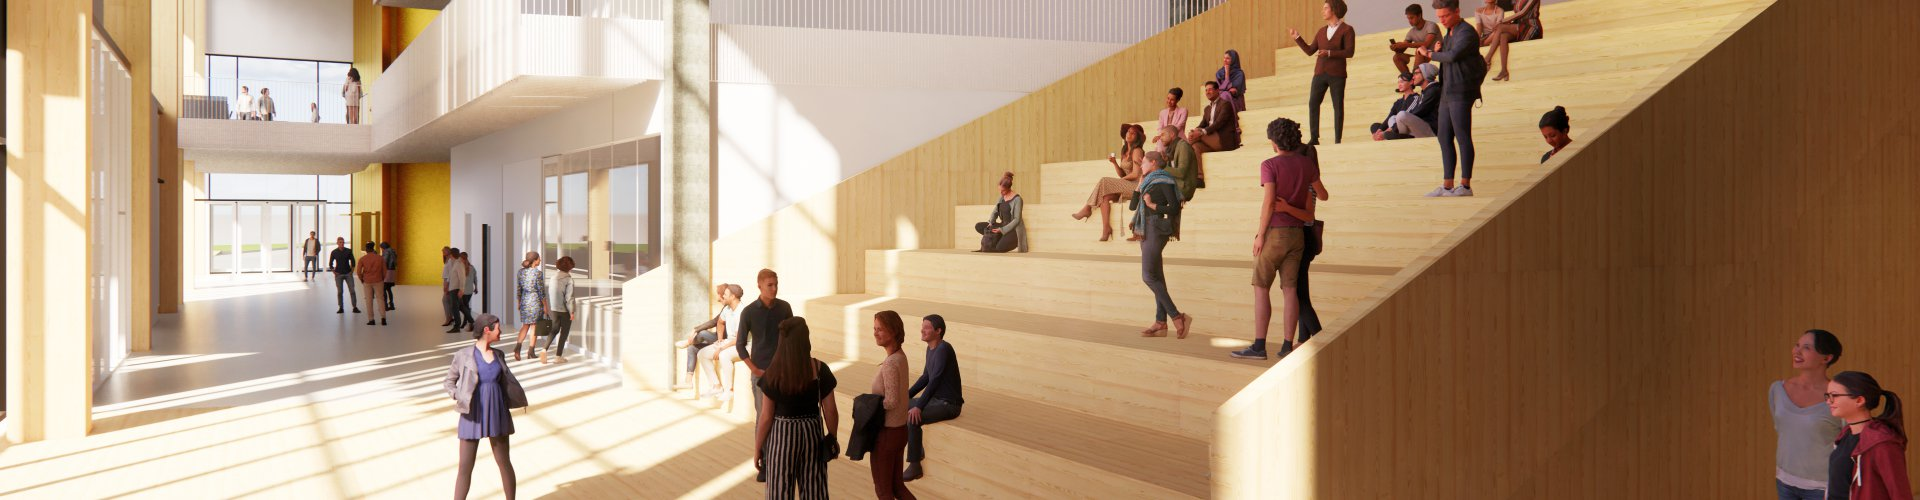 Rendering of a wide set of stairs in a bright hallway